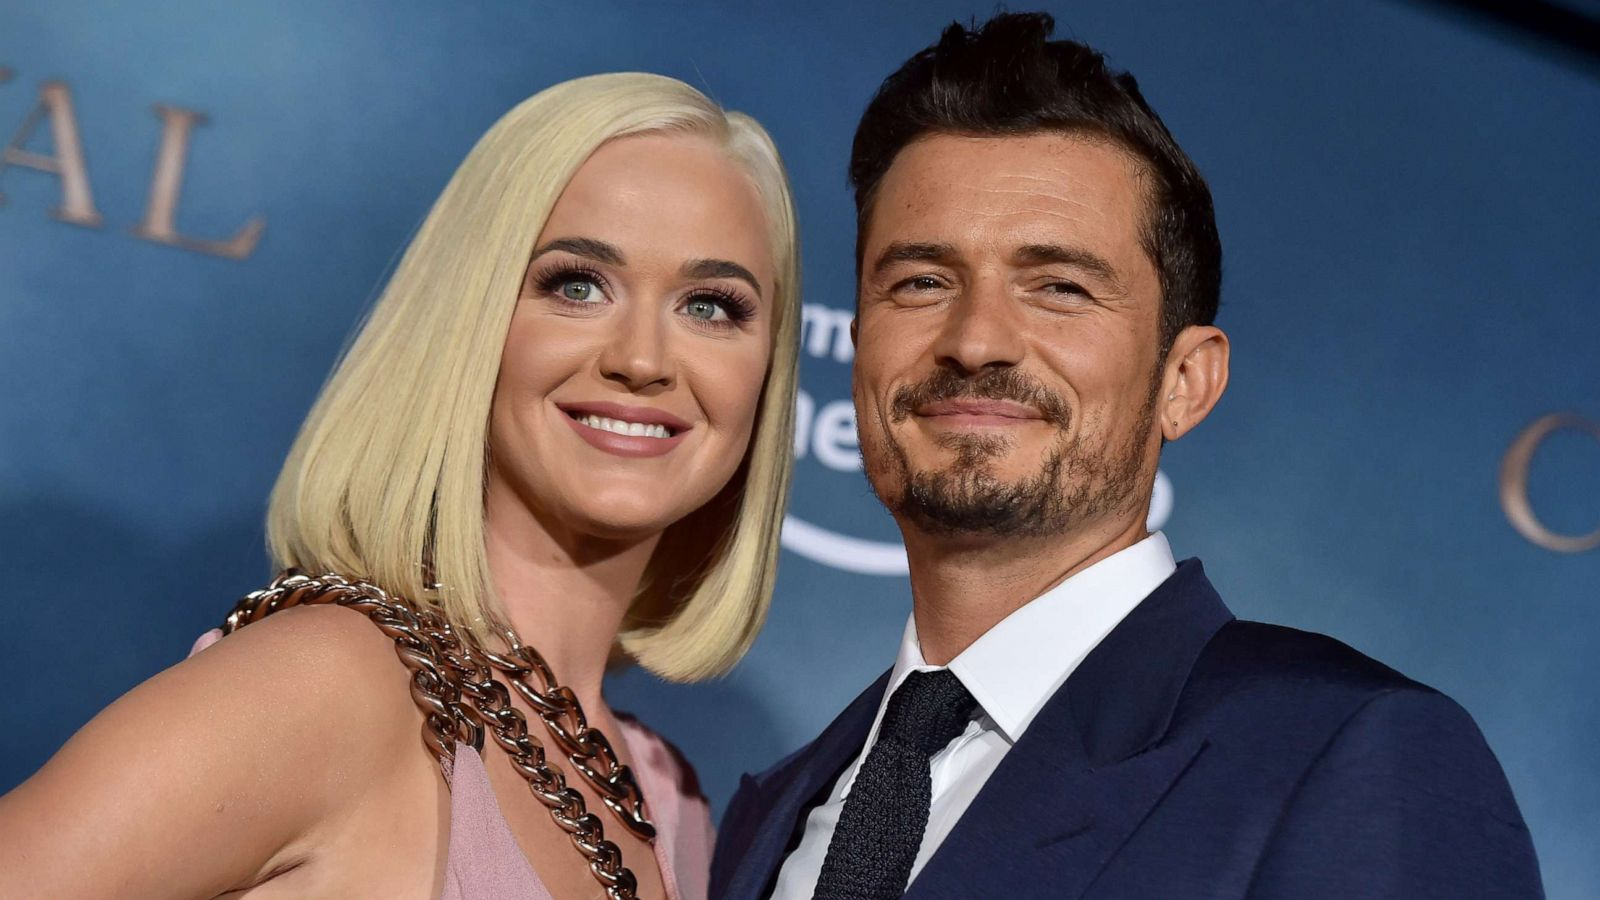 Katy Perry Talks Her Wedding And What She Loves About Her Fiance Orlando Bloom Gma